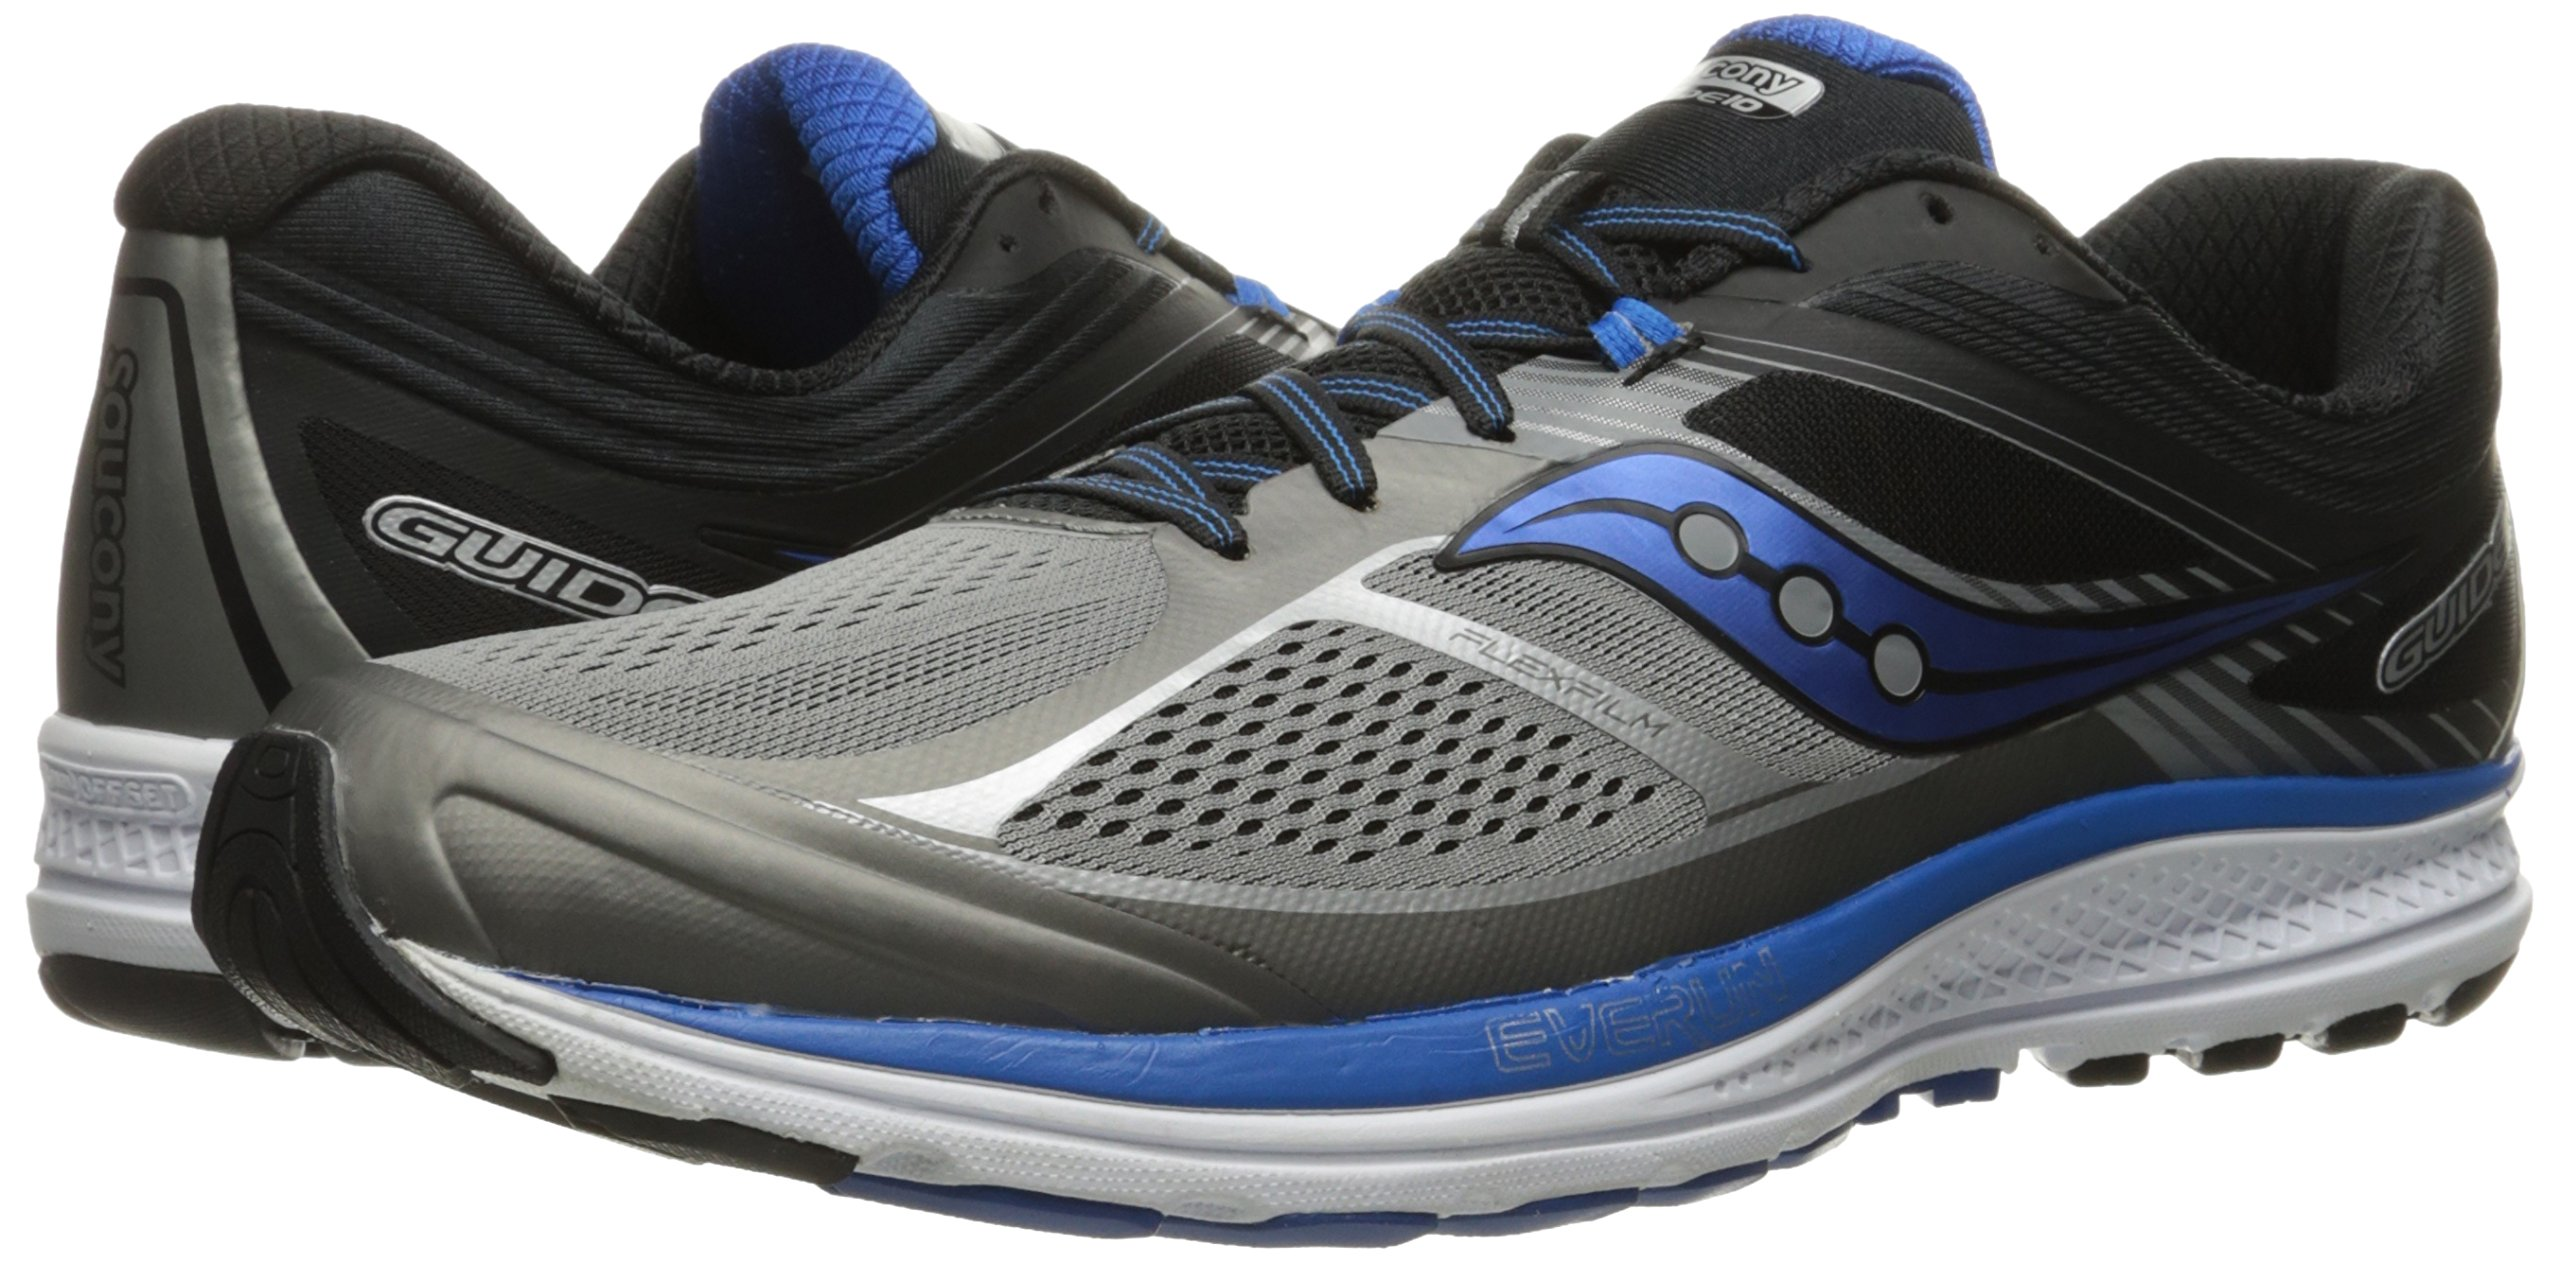 Saucony Men's Guide 10 Running Shoes, Grey Black, 14 D(M) US by Saucony (Image #6)